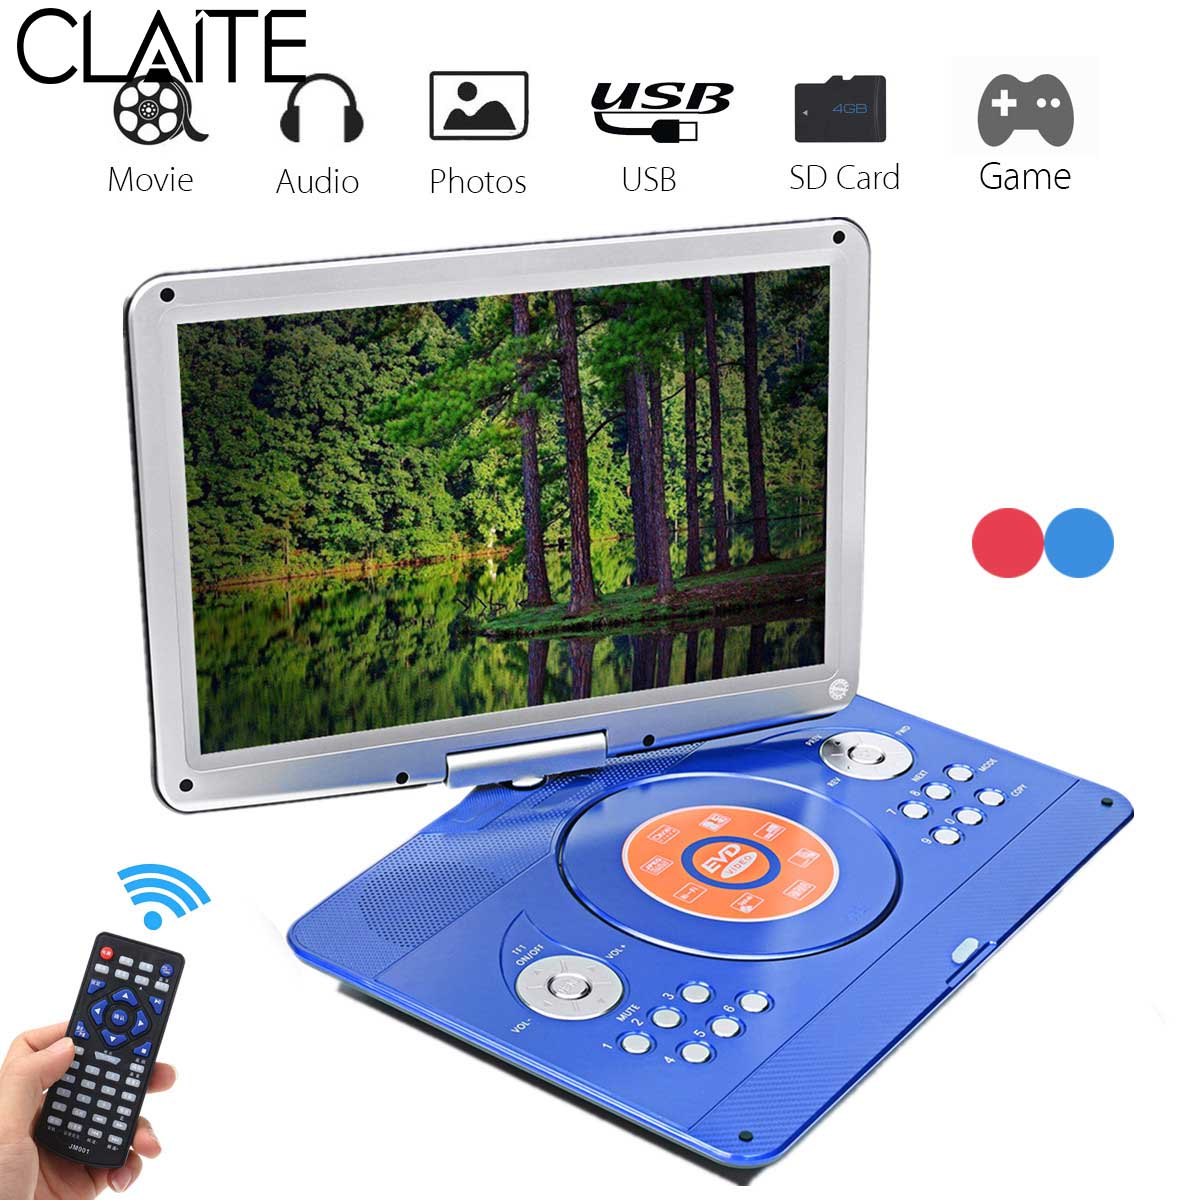 14 inch Portable DVD Player Rotatable Screen Multi Media DVD for Game TV Function Support MP3 MP4 VCD CD Player for Home and Car ...